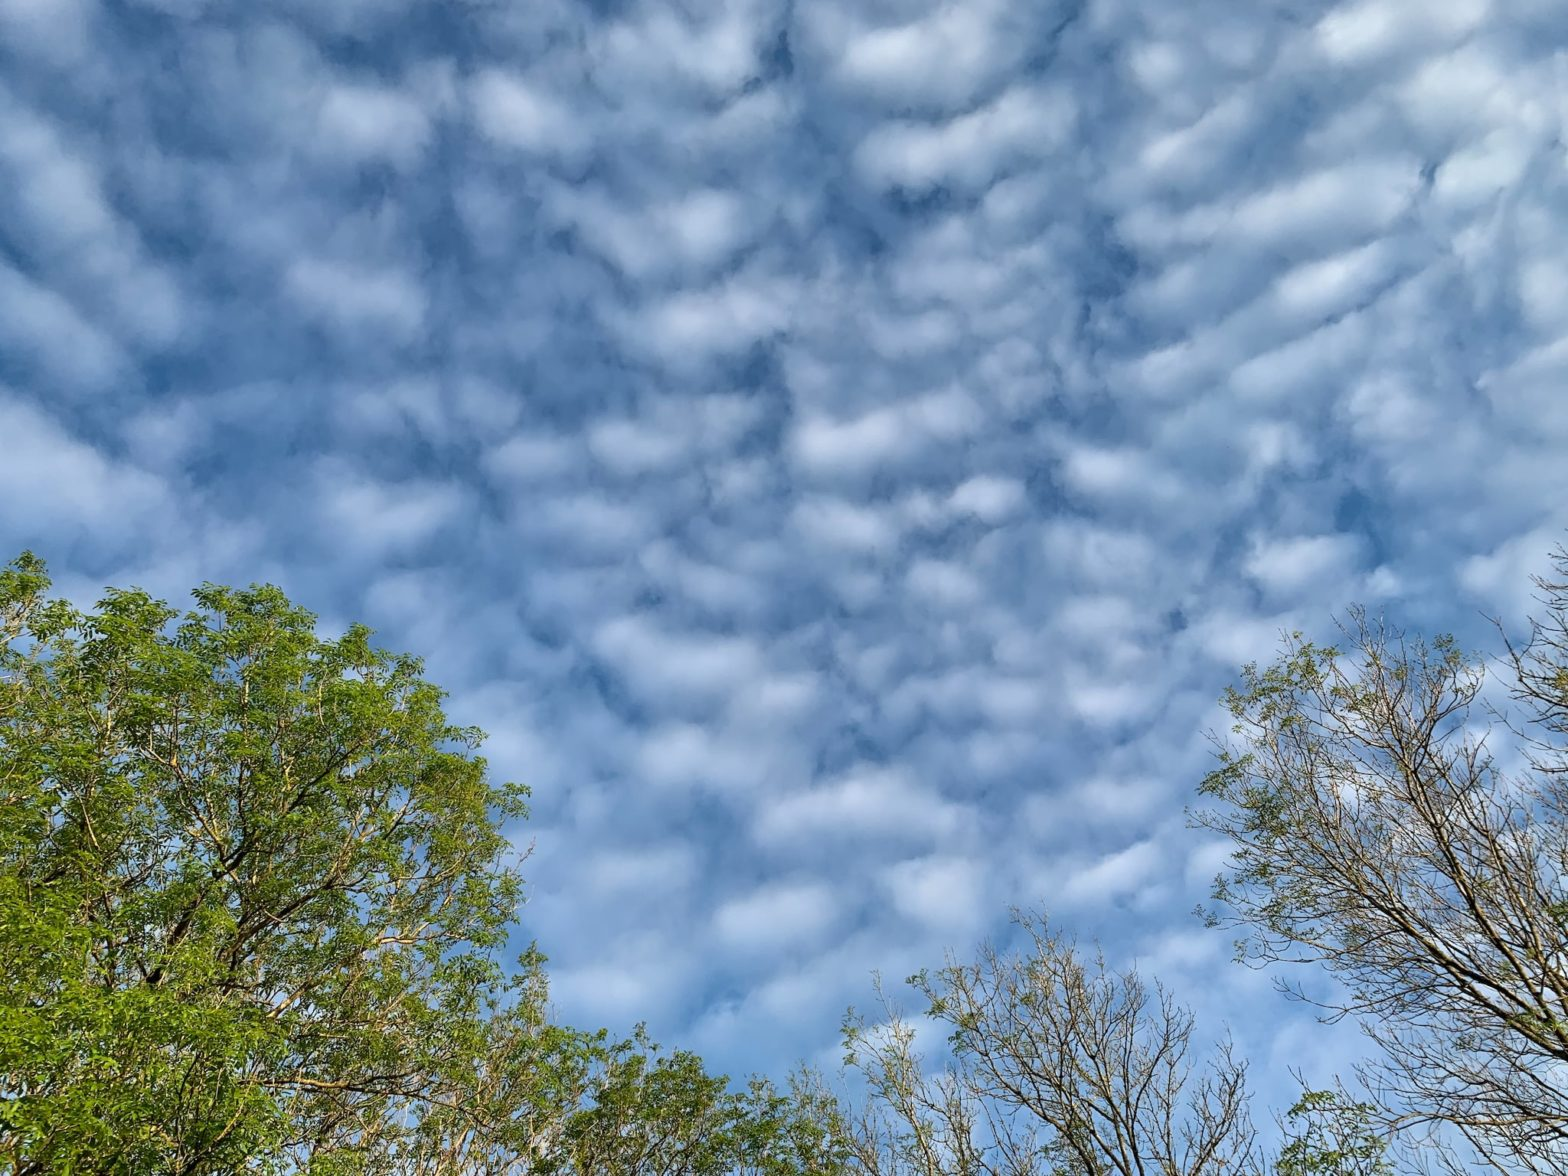 Scattered clouds in the sky framed by the treetops